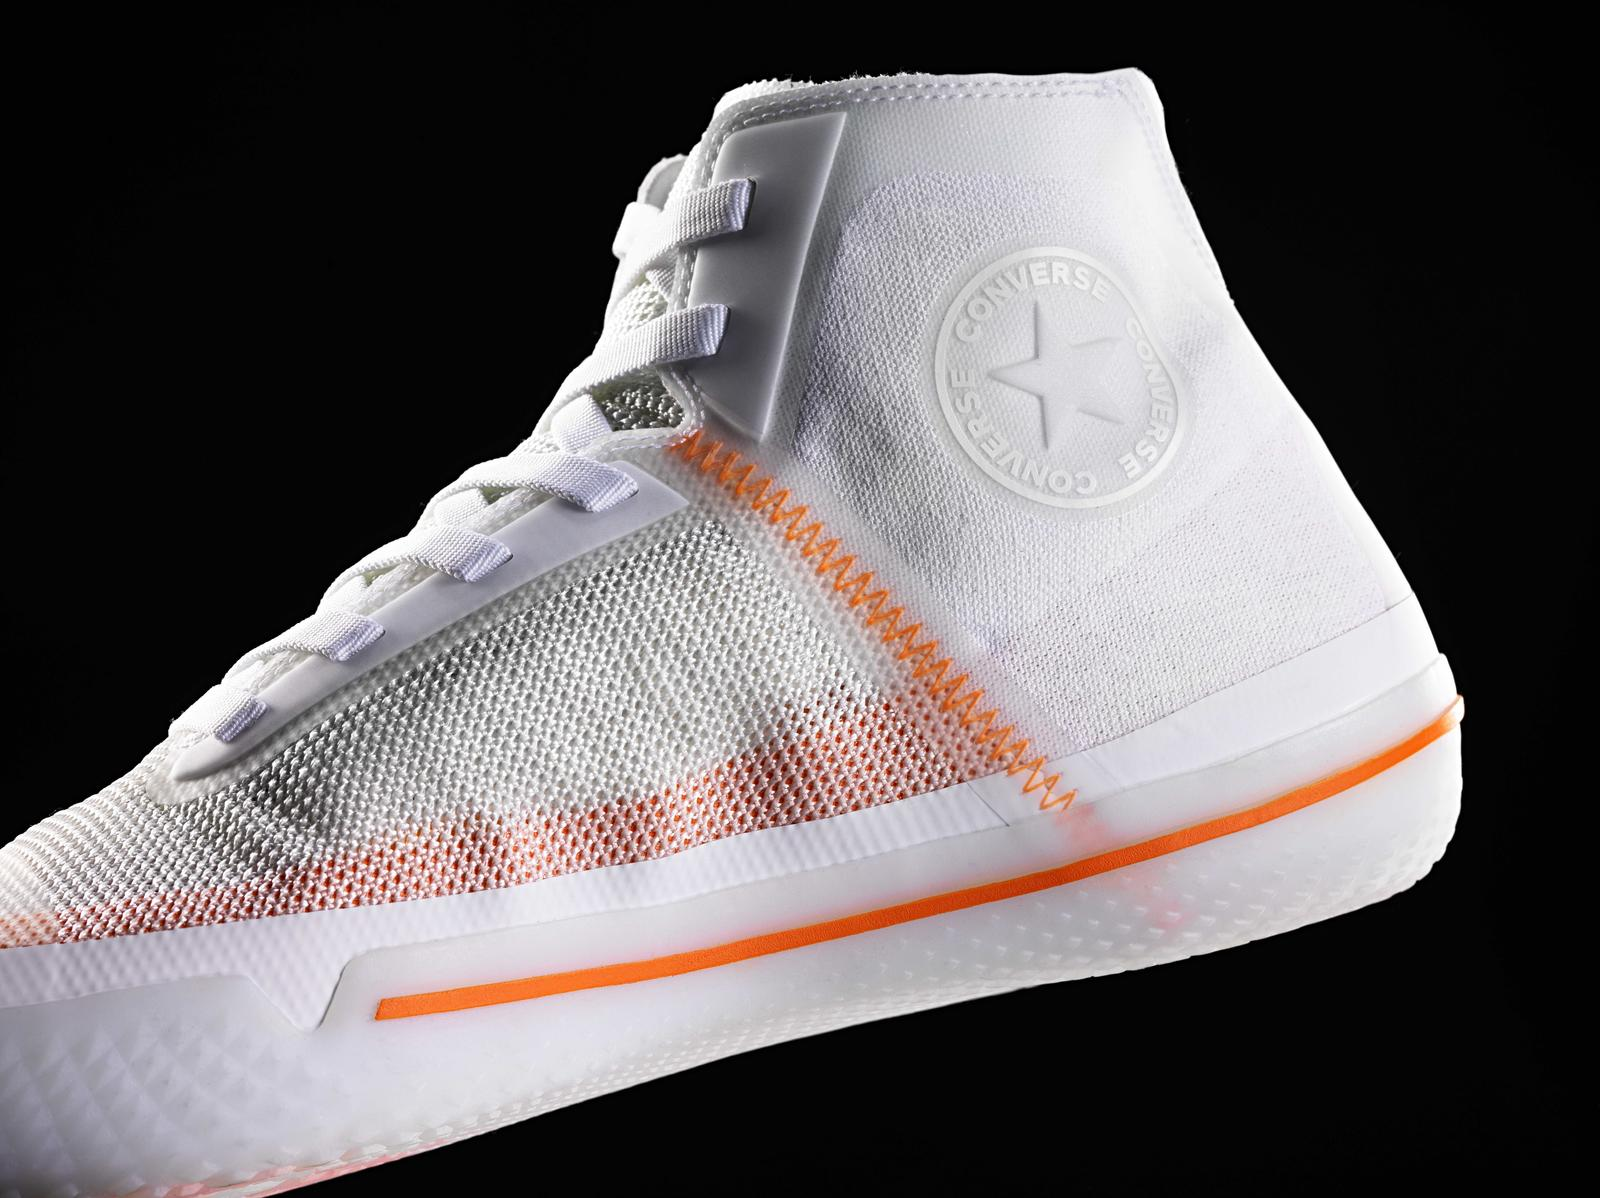 CONVERSE_ALL_STAR_PRO_BB_3_native_1600.jpg